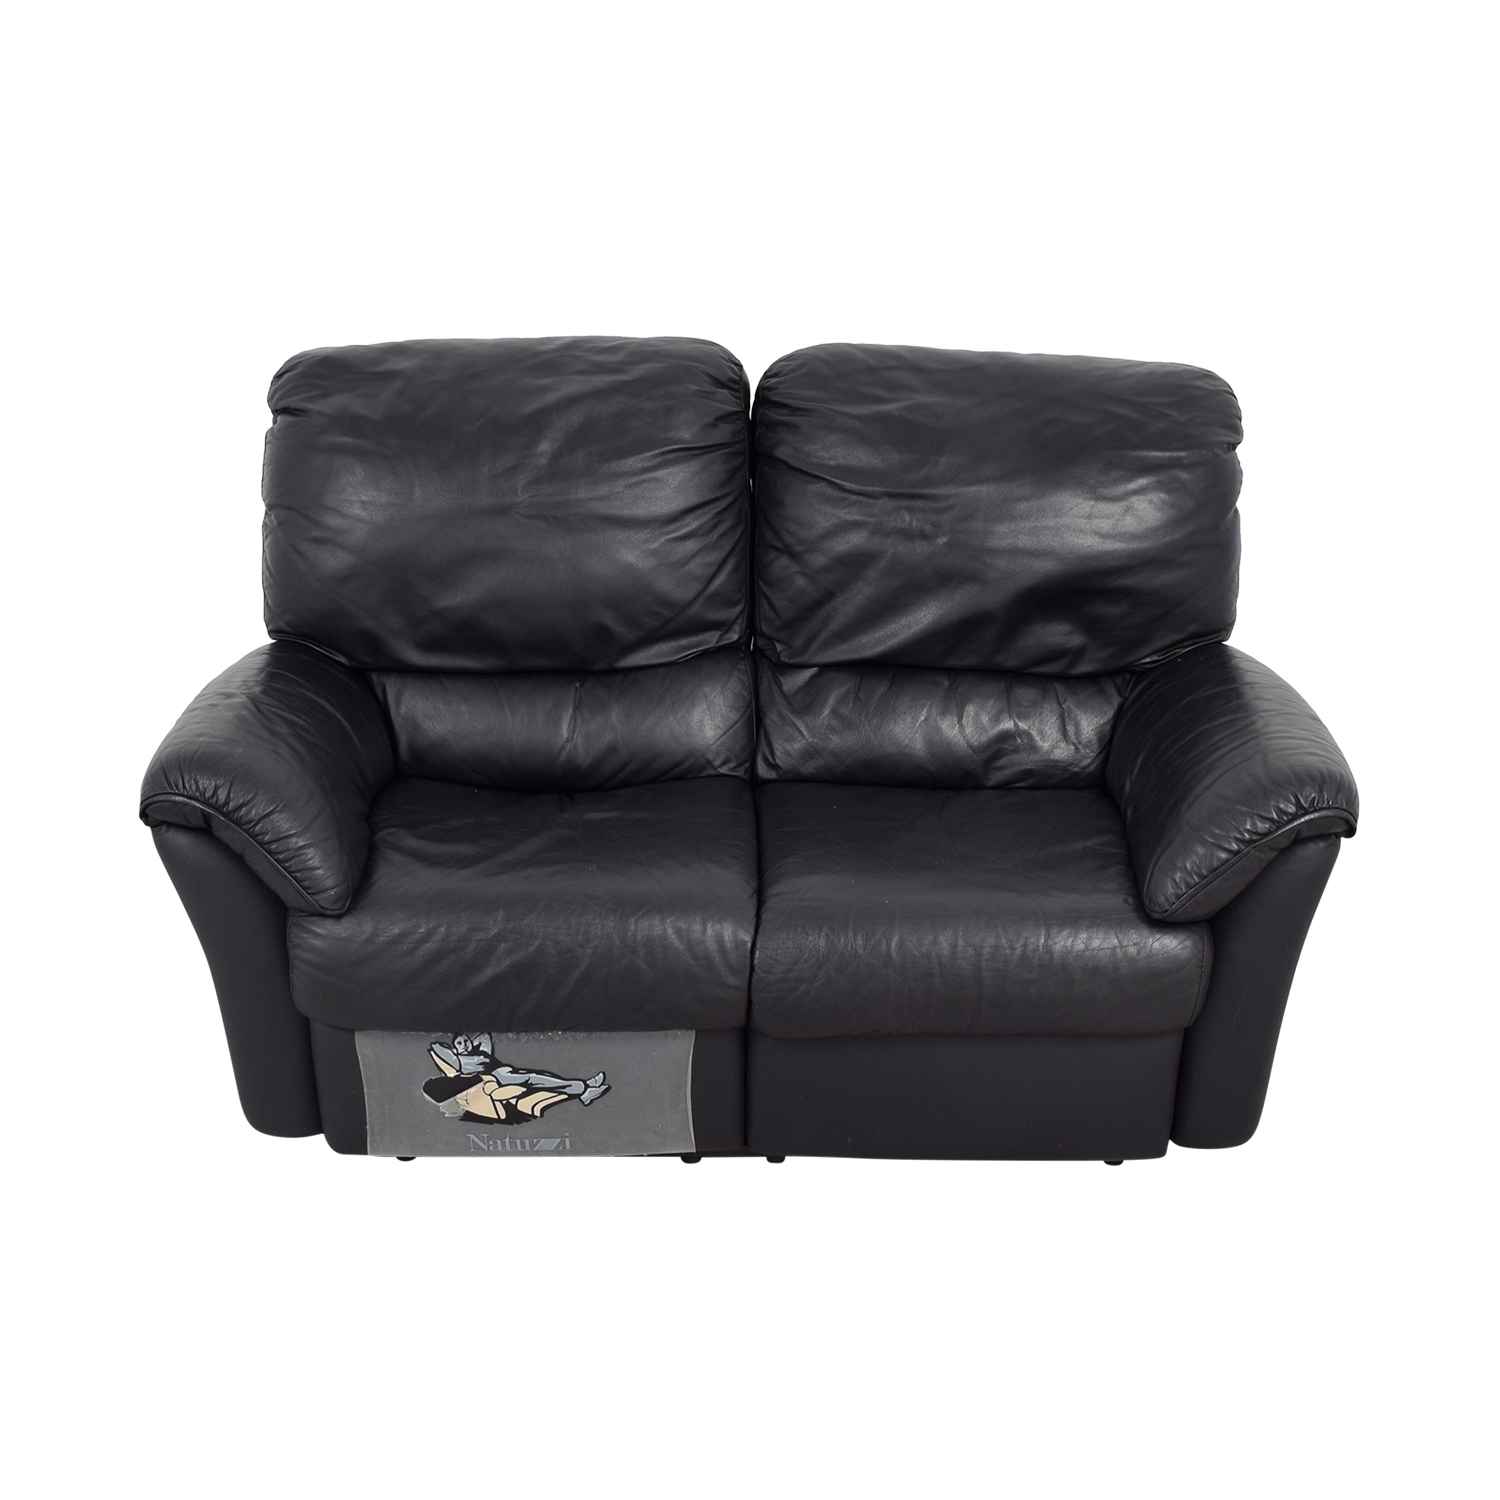 Natuzzi Natuzzi Leather Recliner Loveseat nj